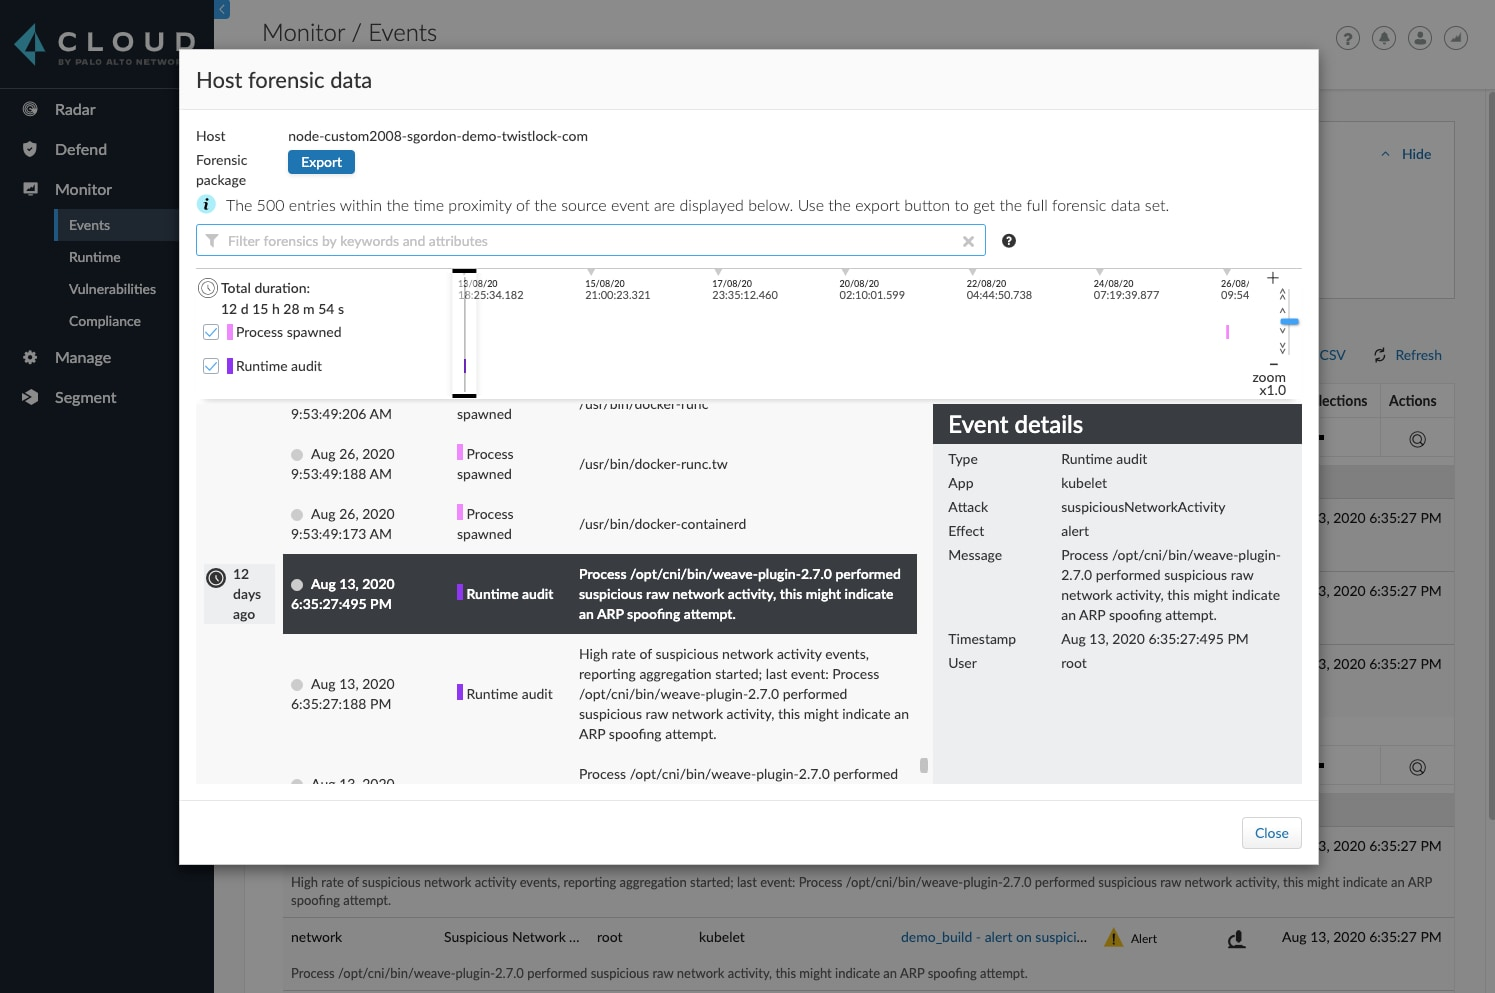 A timeline of Host forensics data in Prisma Cloud